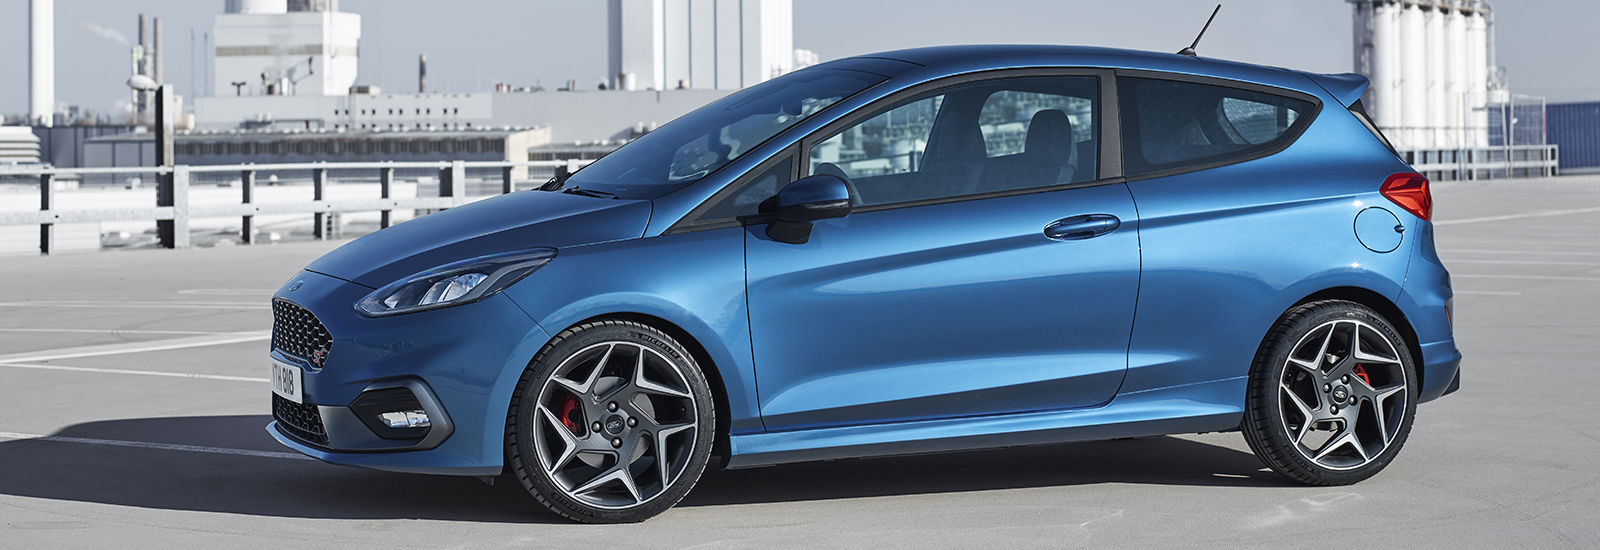 2014 Ford Fiesta ST2 Accelerates Faster in Britain